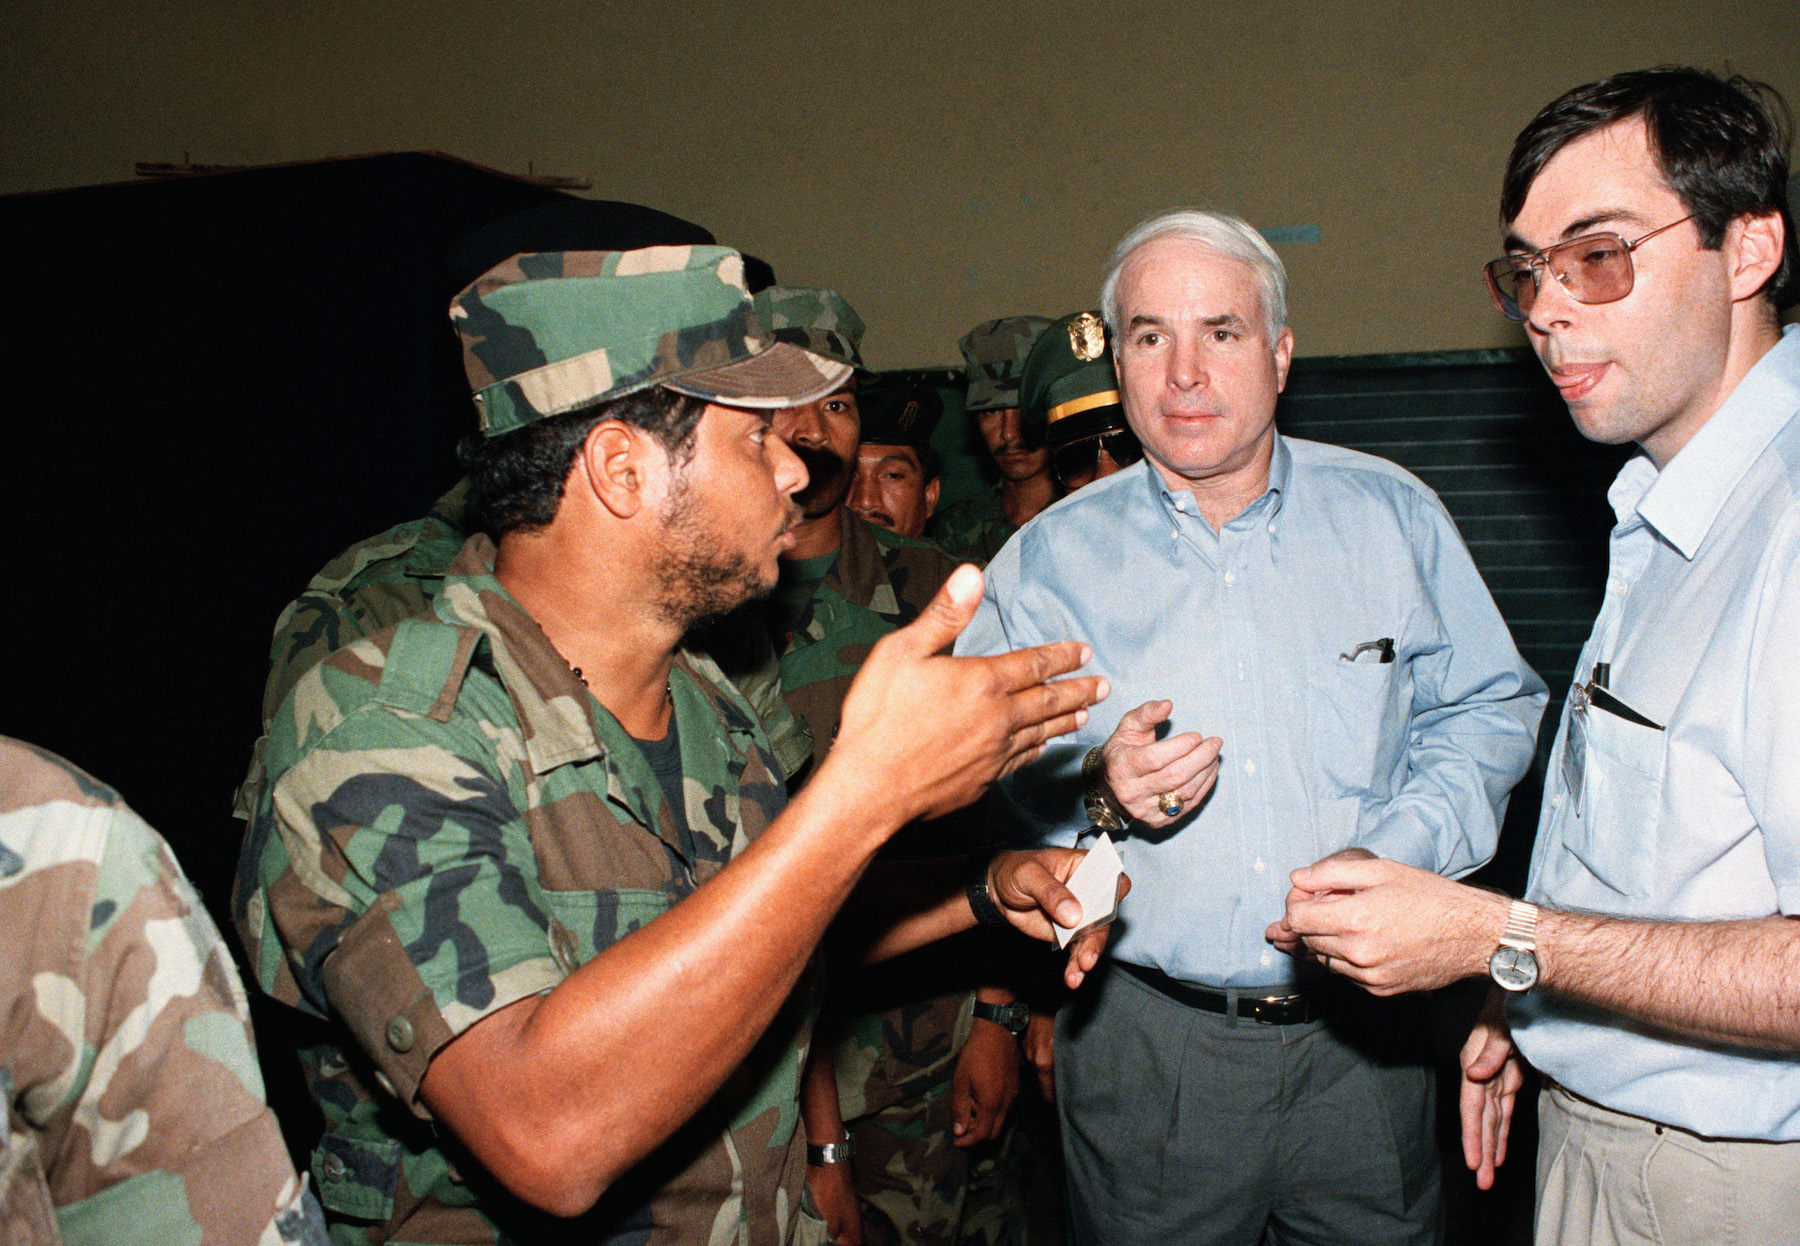 <div class='meta'><div class='origin-logo' data-origin='AP'></div><span class='caption-text' data-credit='AP Photo/Matias Recart'>Senator John McCain speaks with a soldier from the Panamanian Defense Forces  Sunday, May 7, 1989, in Panama City after he voted.</span></div>